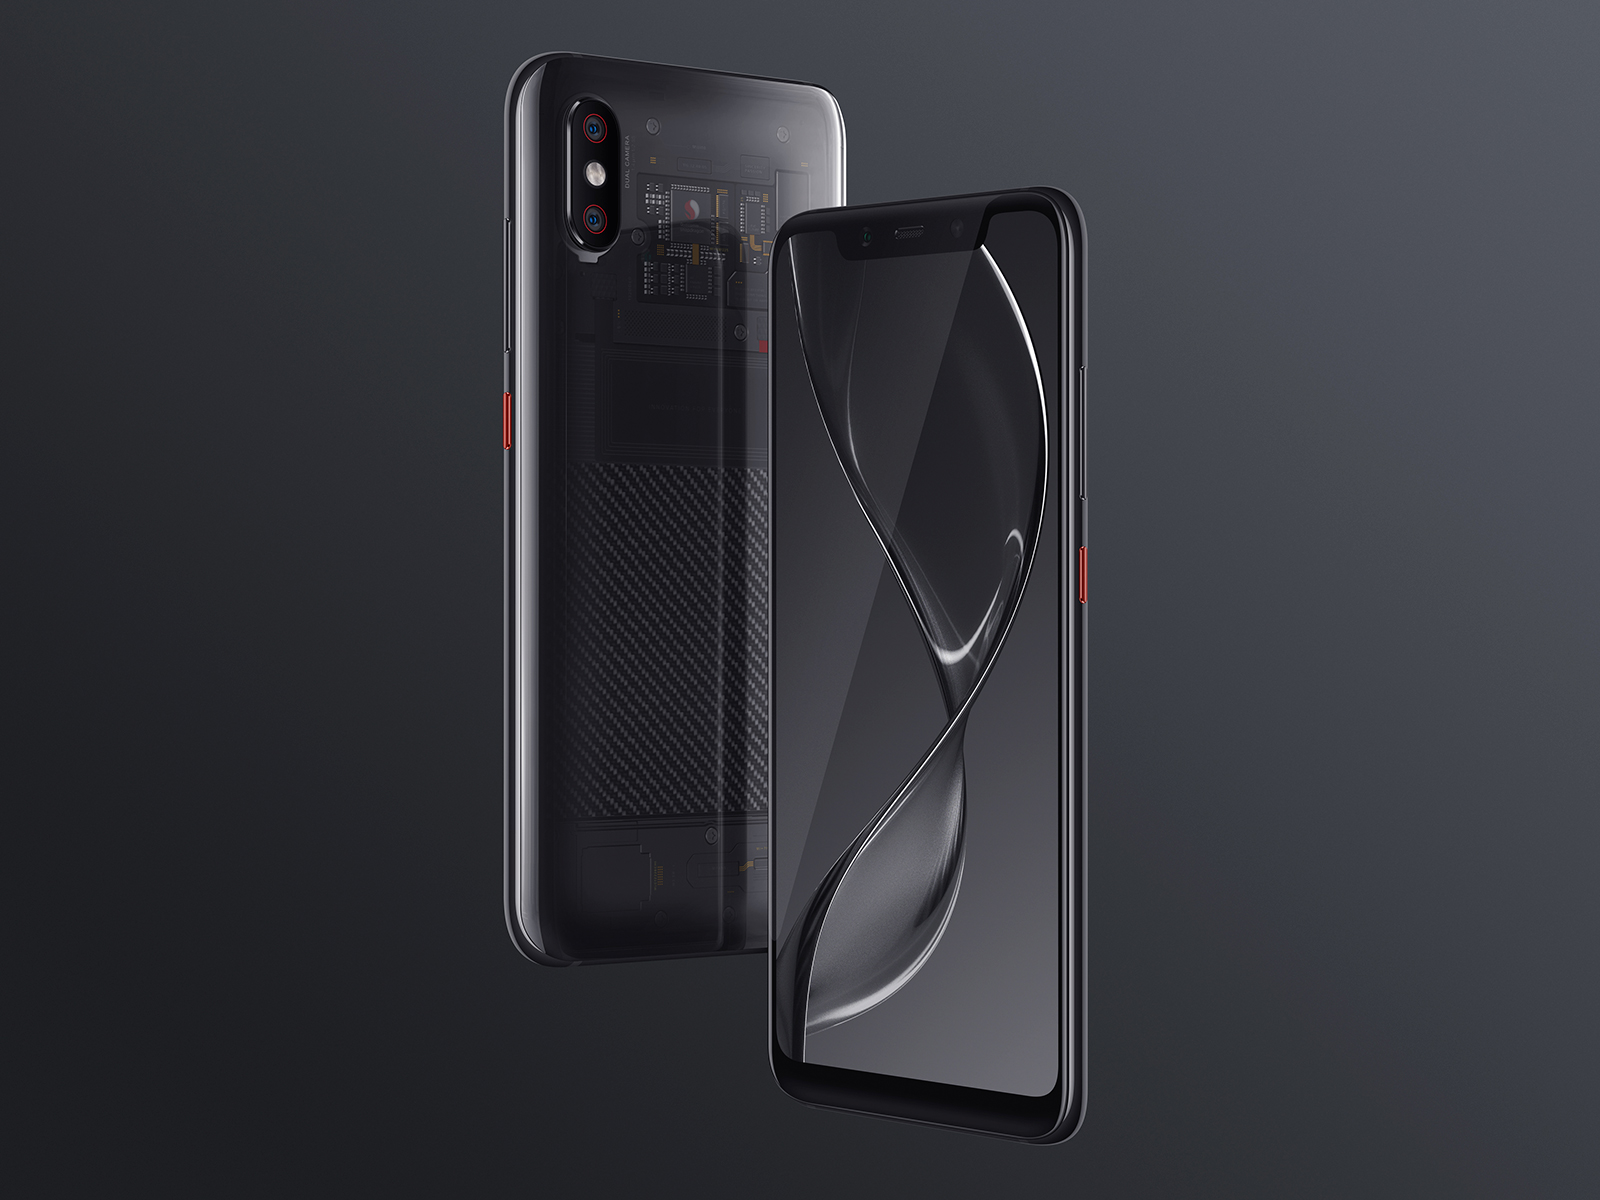 Xiaomi Mi 8 SE with Snapdragon 710 SoC & 20MP Selfie Camera Launched